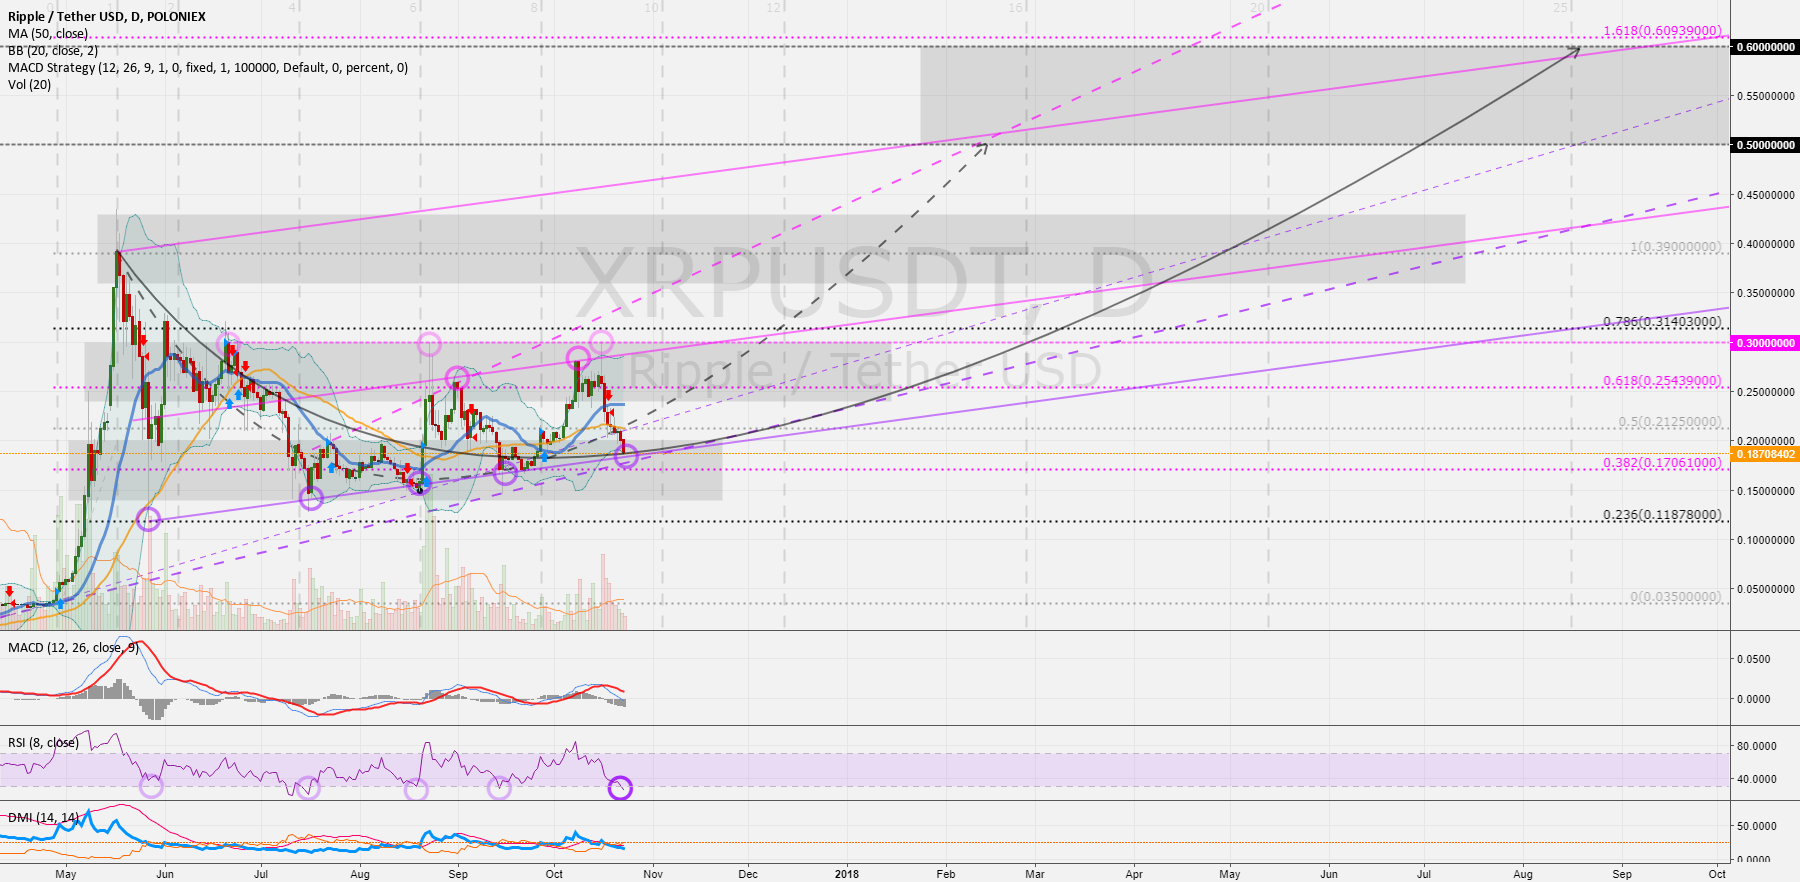 XRPUSD - RippleUSD (1D): The next upswing could be  > 0.3 USD